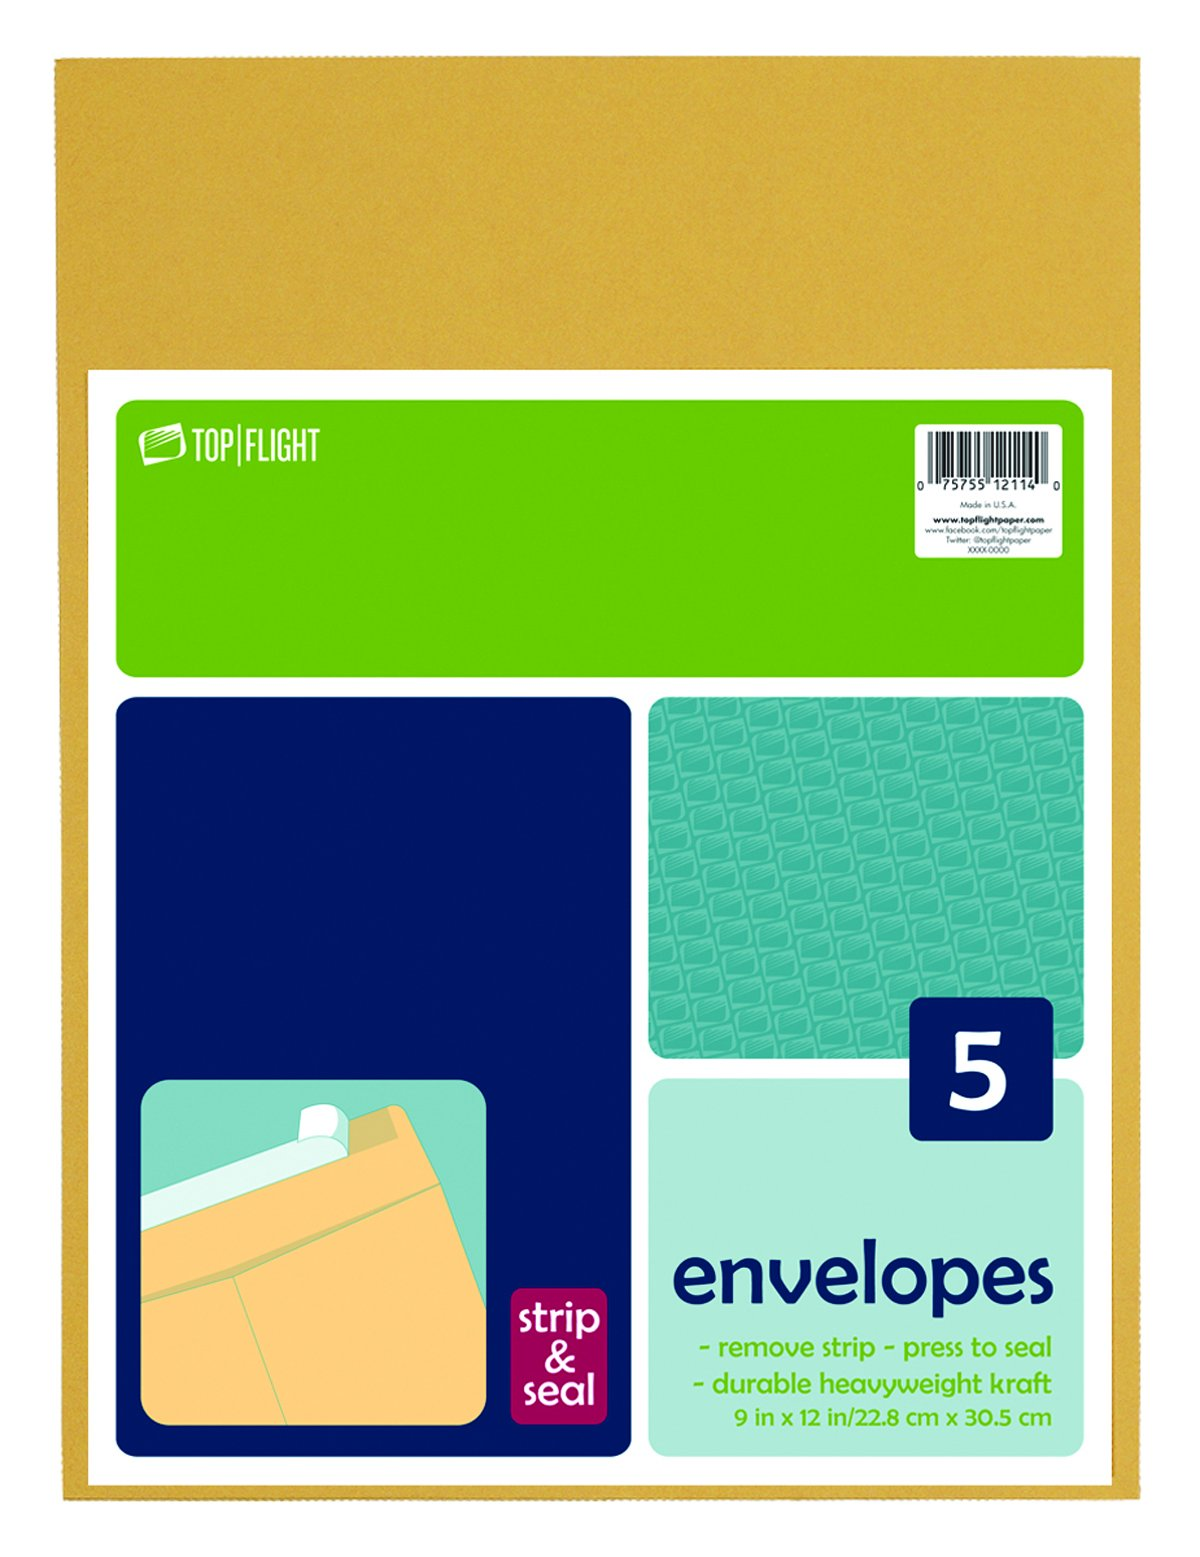 Top Flight Strip and Seal Open-End Envelopes, 9 x 12 Inches, Brown Kraft, 5 Envelopes per Pack (6912114)